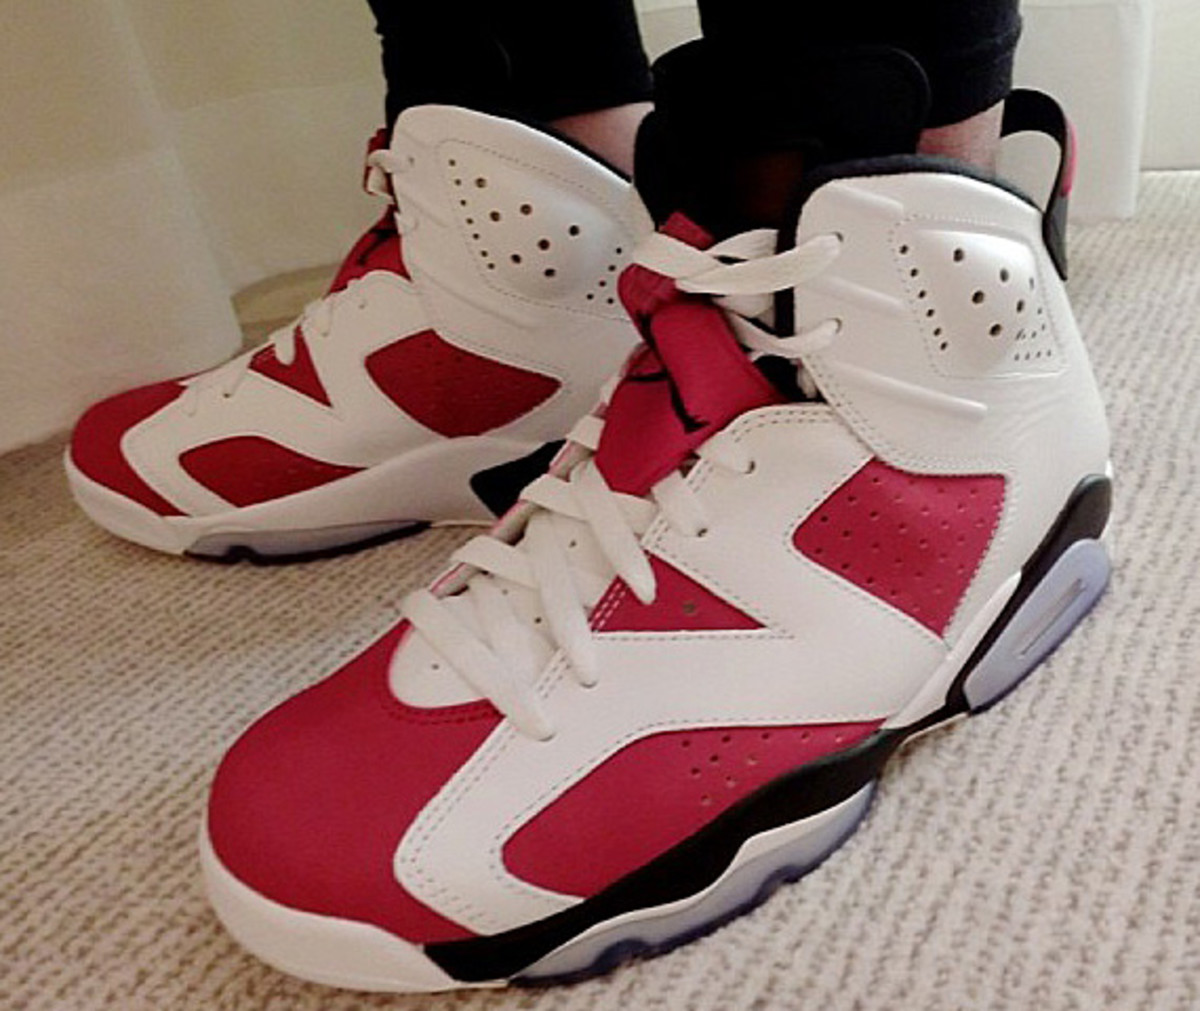 timeless design 39dfb 3eabd One of the original five released in 1991, the Air Jordan 6 Retro in White  Carmine-Black will be returning this summer as Jordan Brand s attempt to  fulfill ...